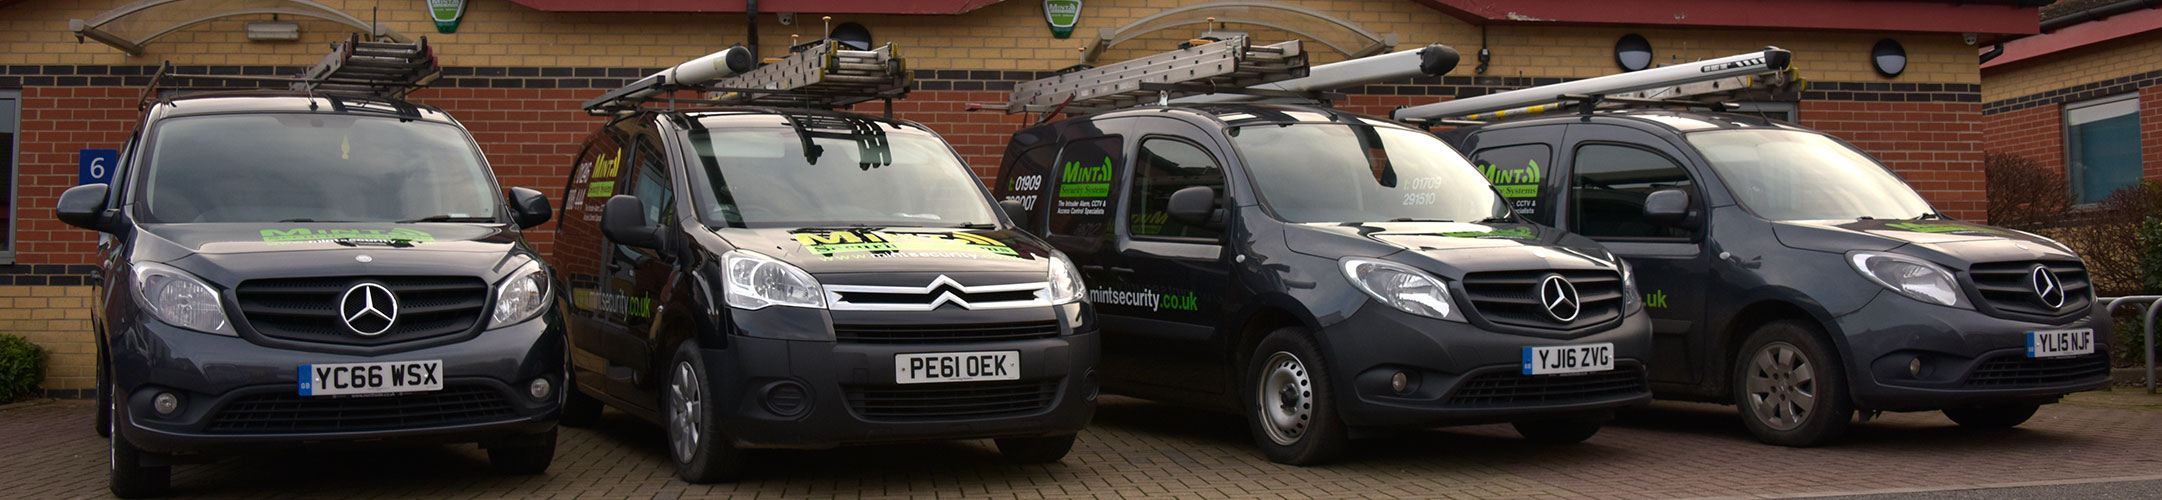 Mint Security Systems Ltd